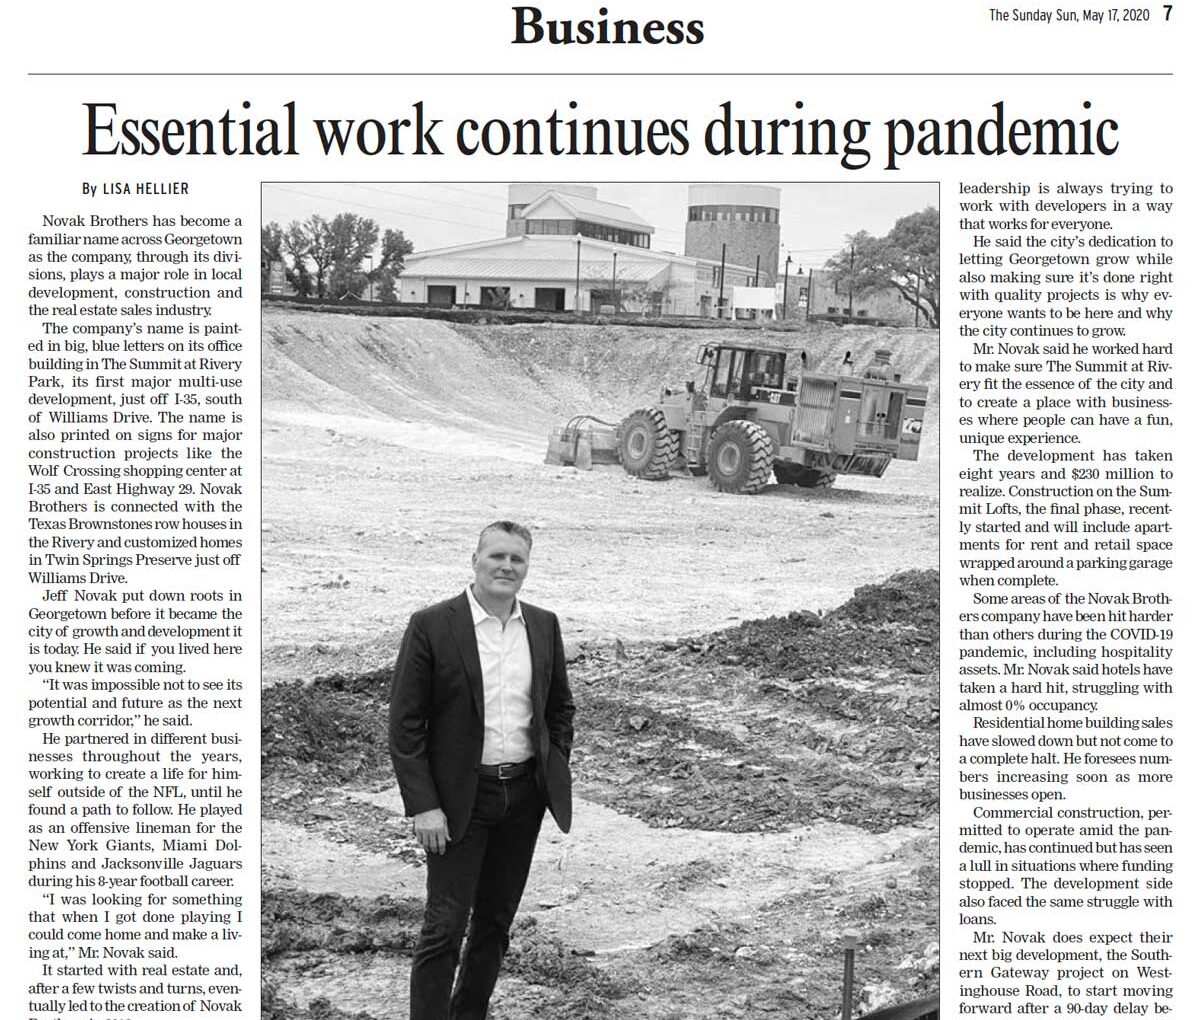 Georgetown Sun: Essential Work Continues During Pandemic